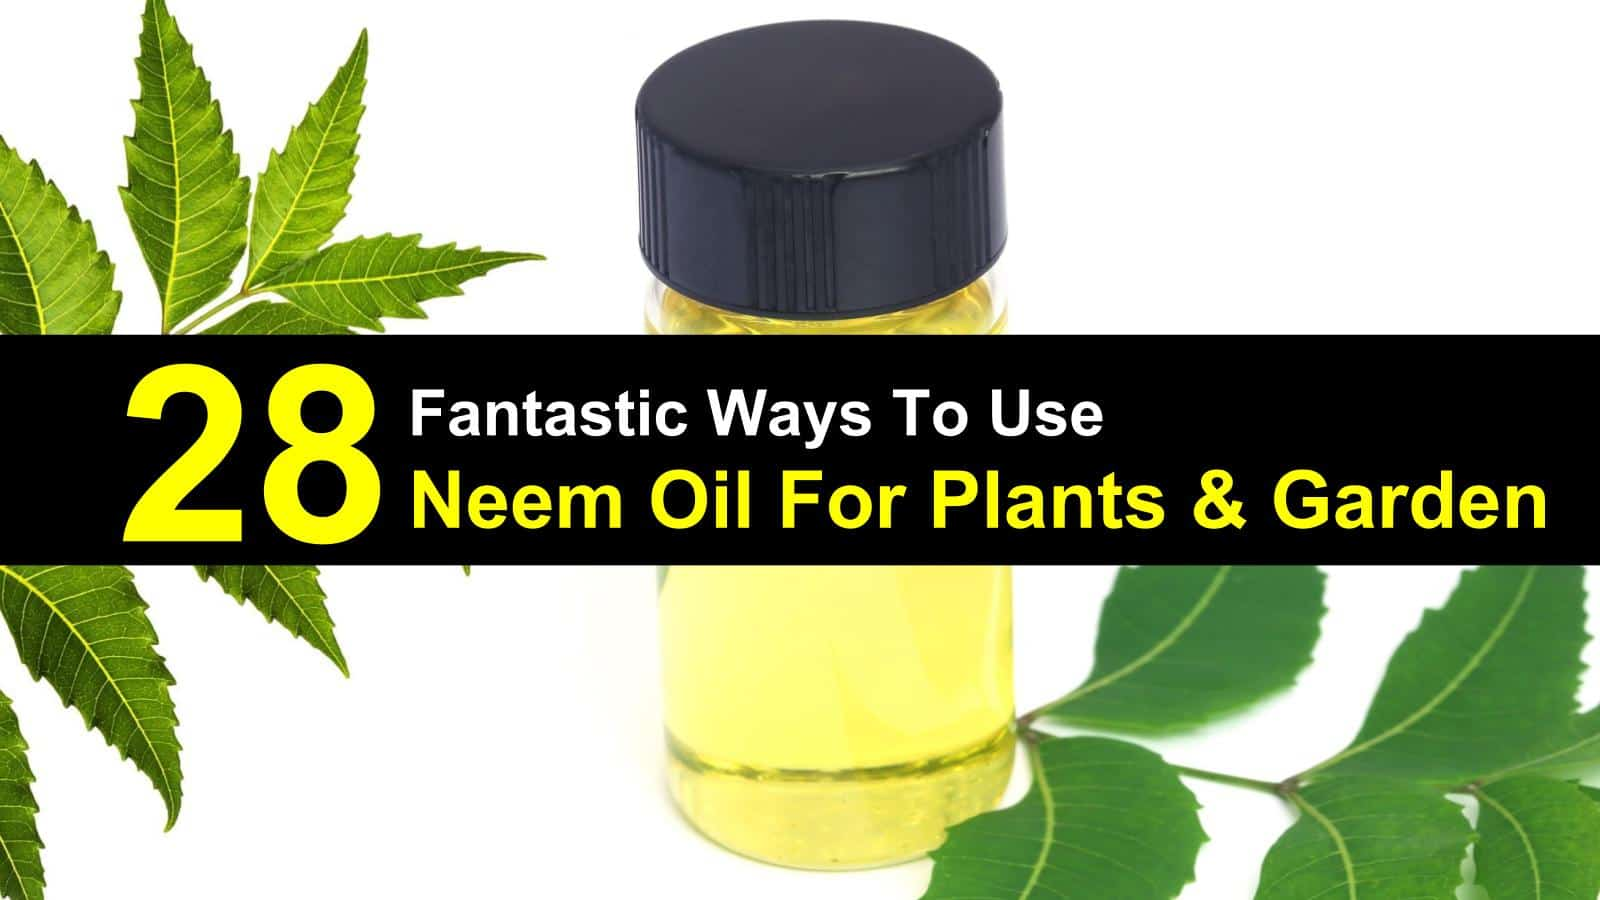 Neem Oil uses for plants & Garden | ecogreenlove